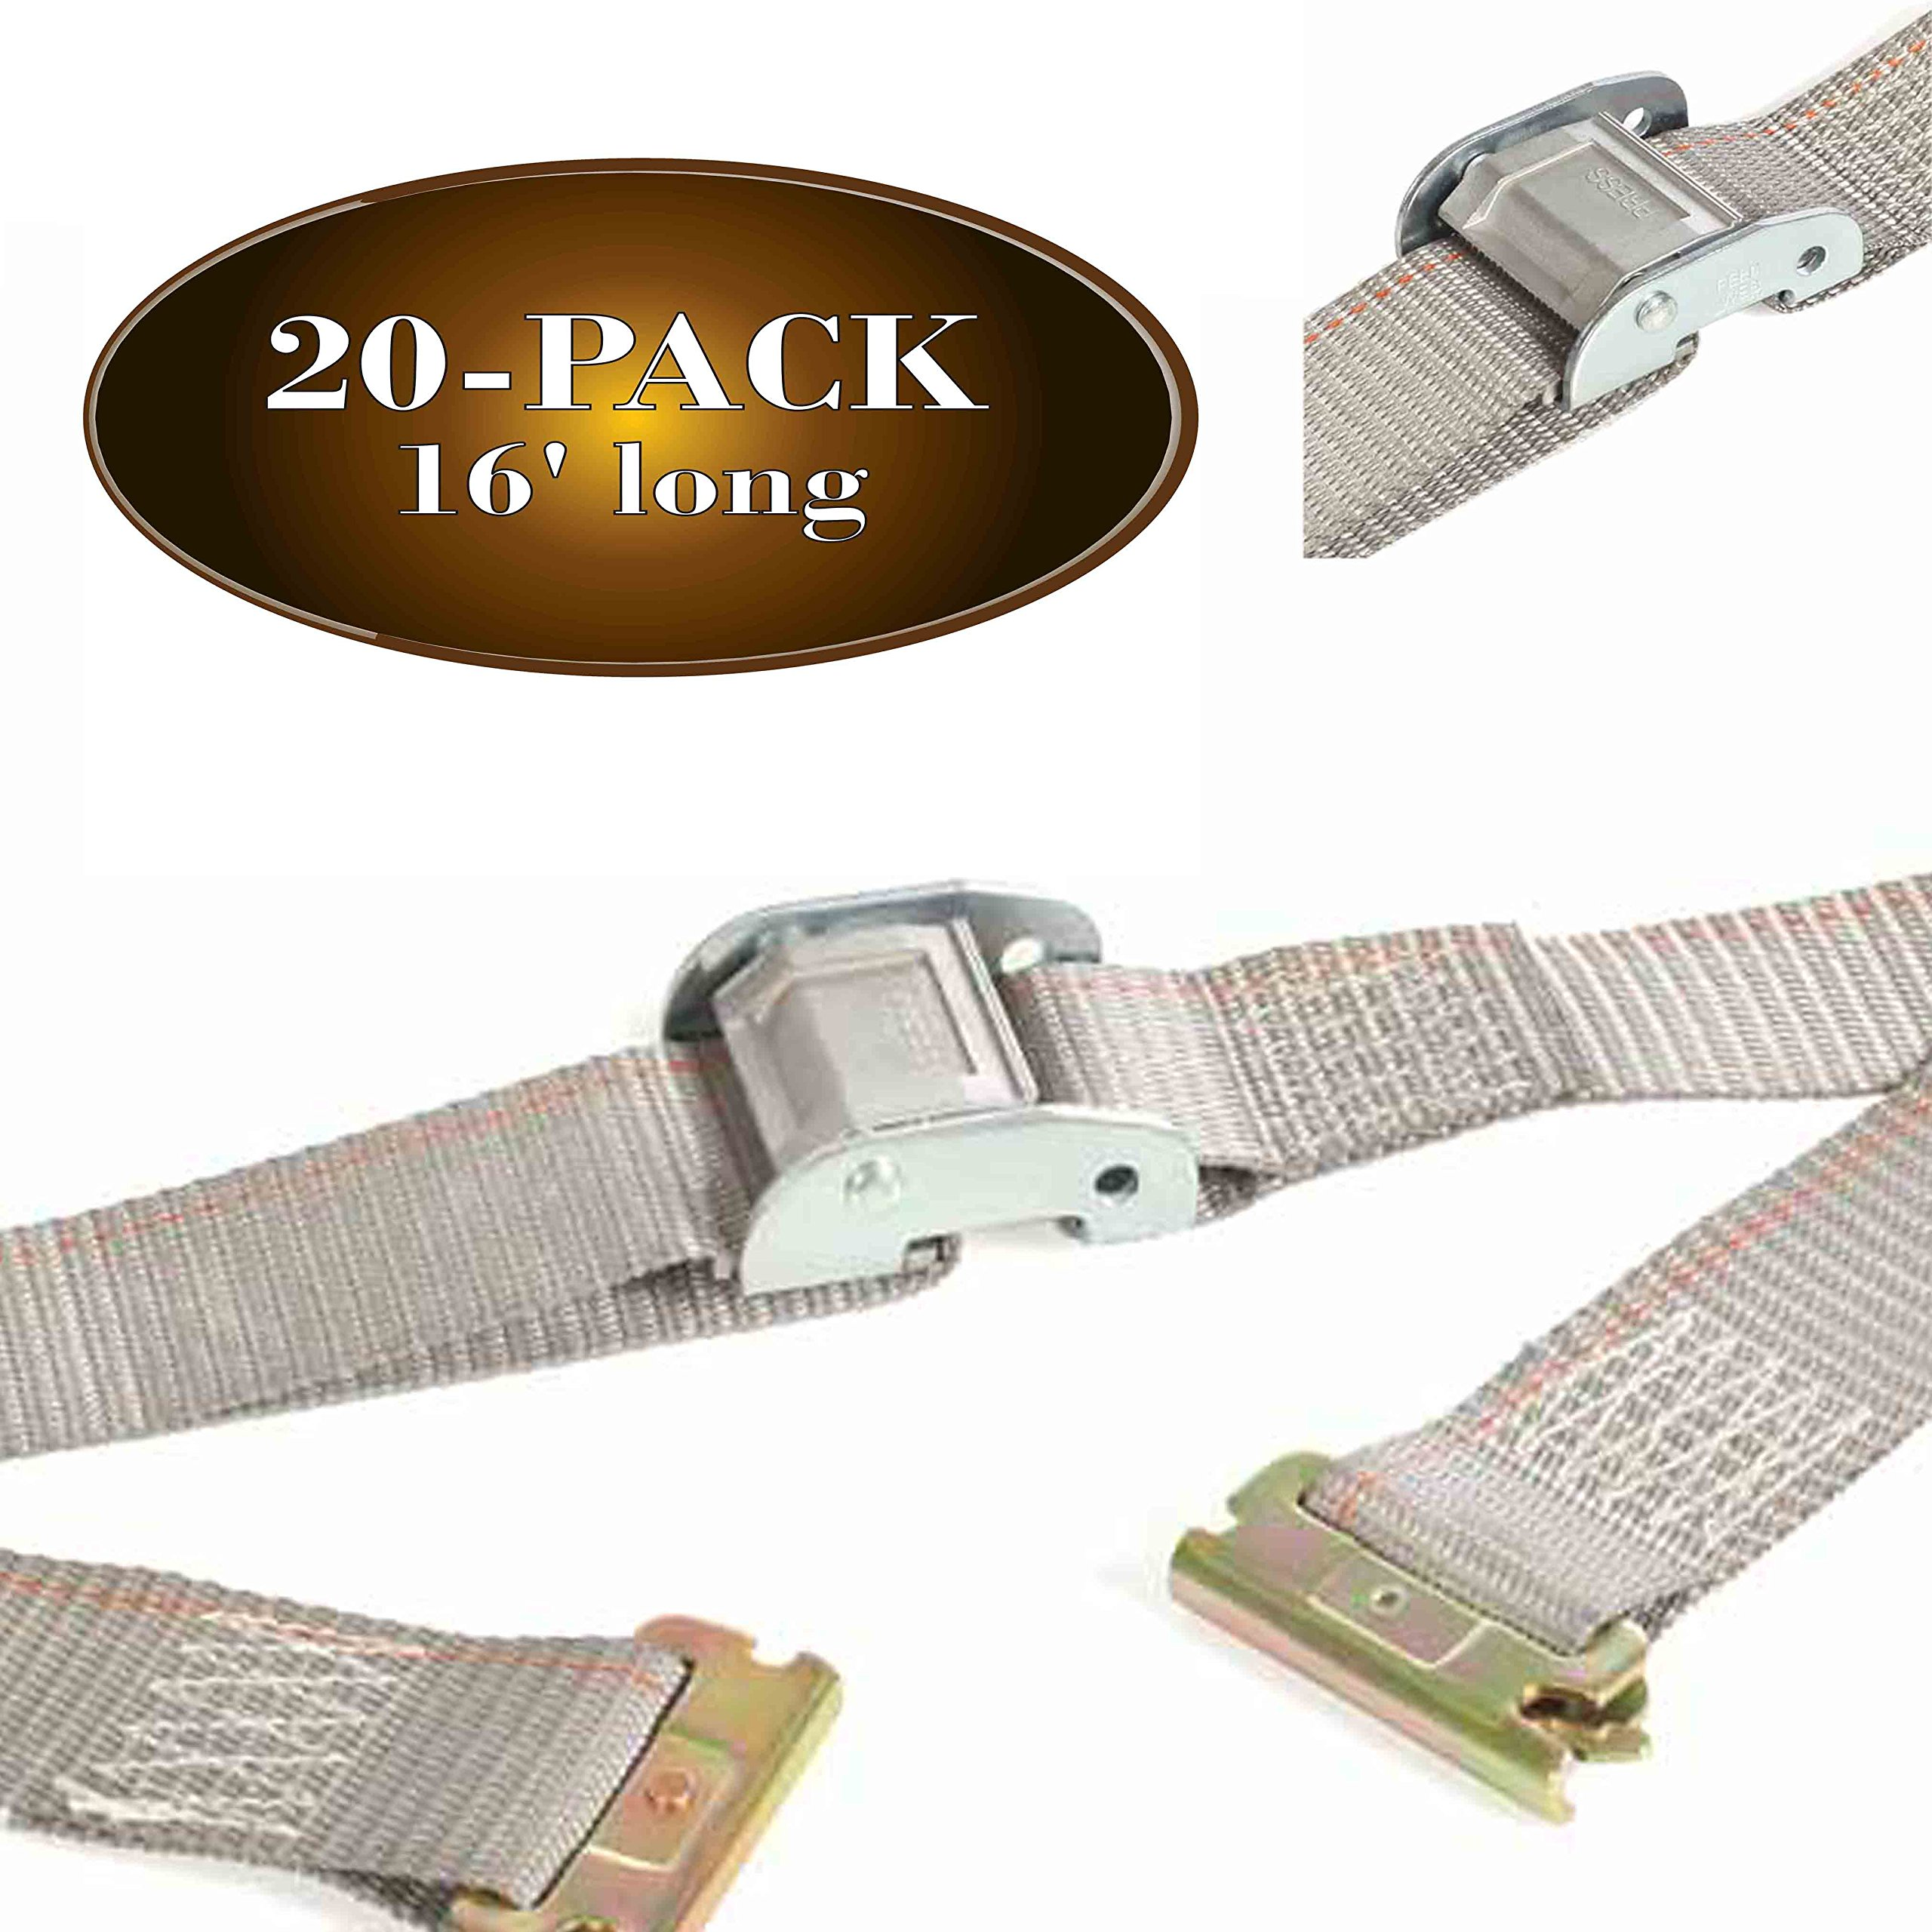 Twenty 2'' x 16' E Track Strap, Durable Cam Buckle Cargo TieDown, Heavy Duty Grey Polyester Tie-Down Cam Strap, ETrack Spring Fittings, Tie Down Motorcycles, Trailer Loads, by DC Cargo by DC Cargo Mall